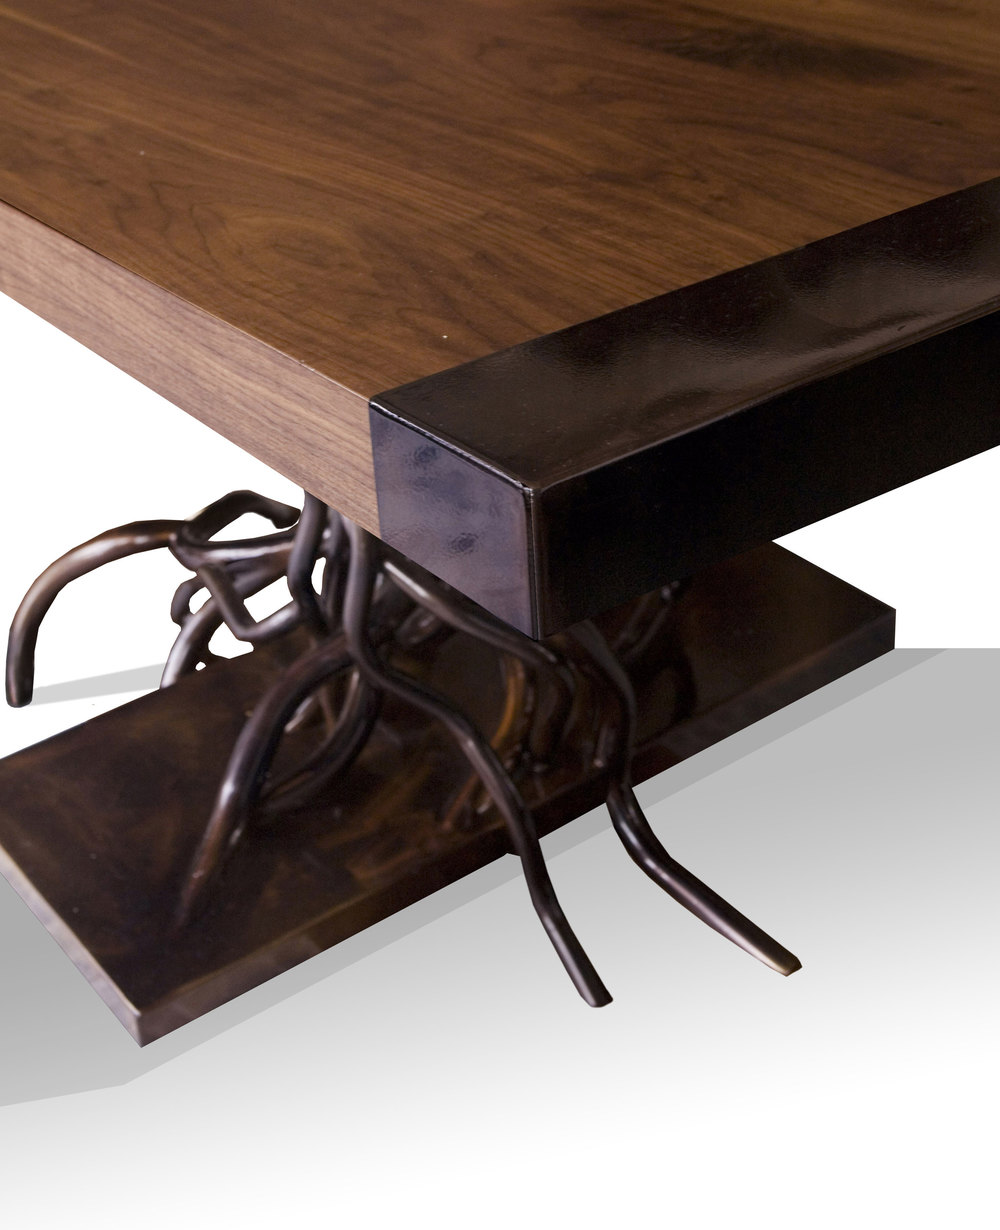 ALBITO TABLE    CONTACT TO BUY